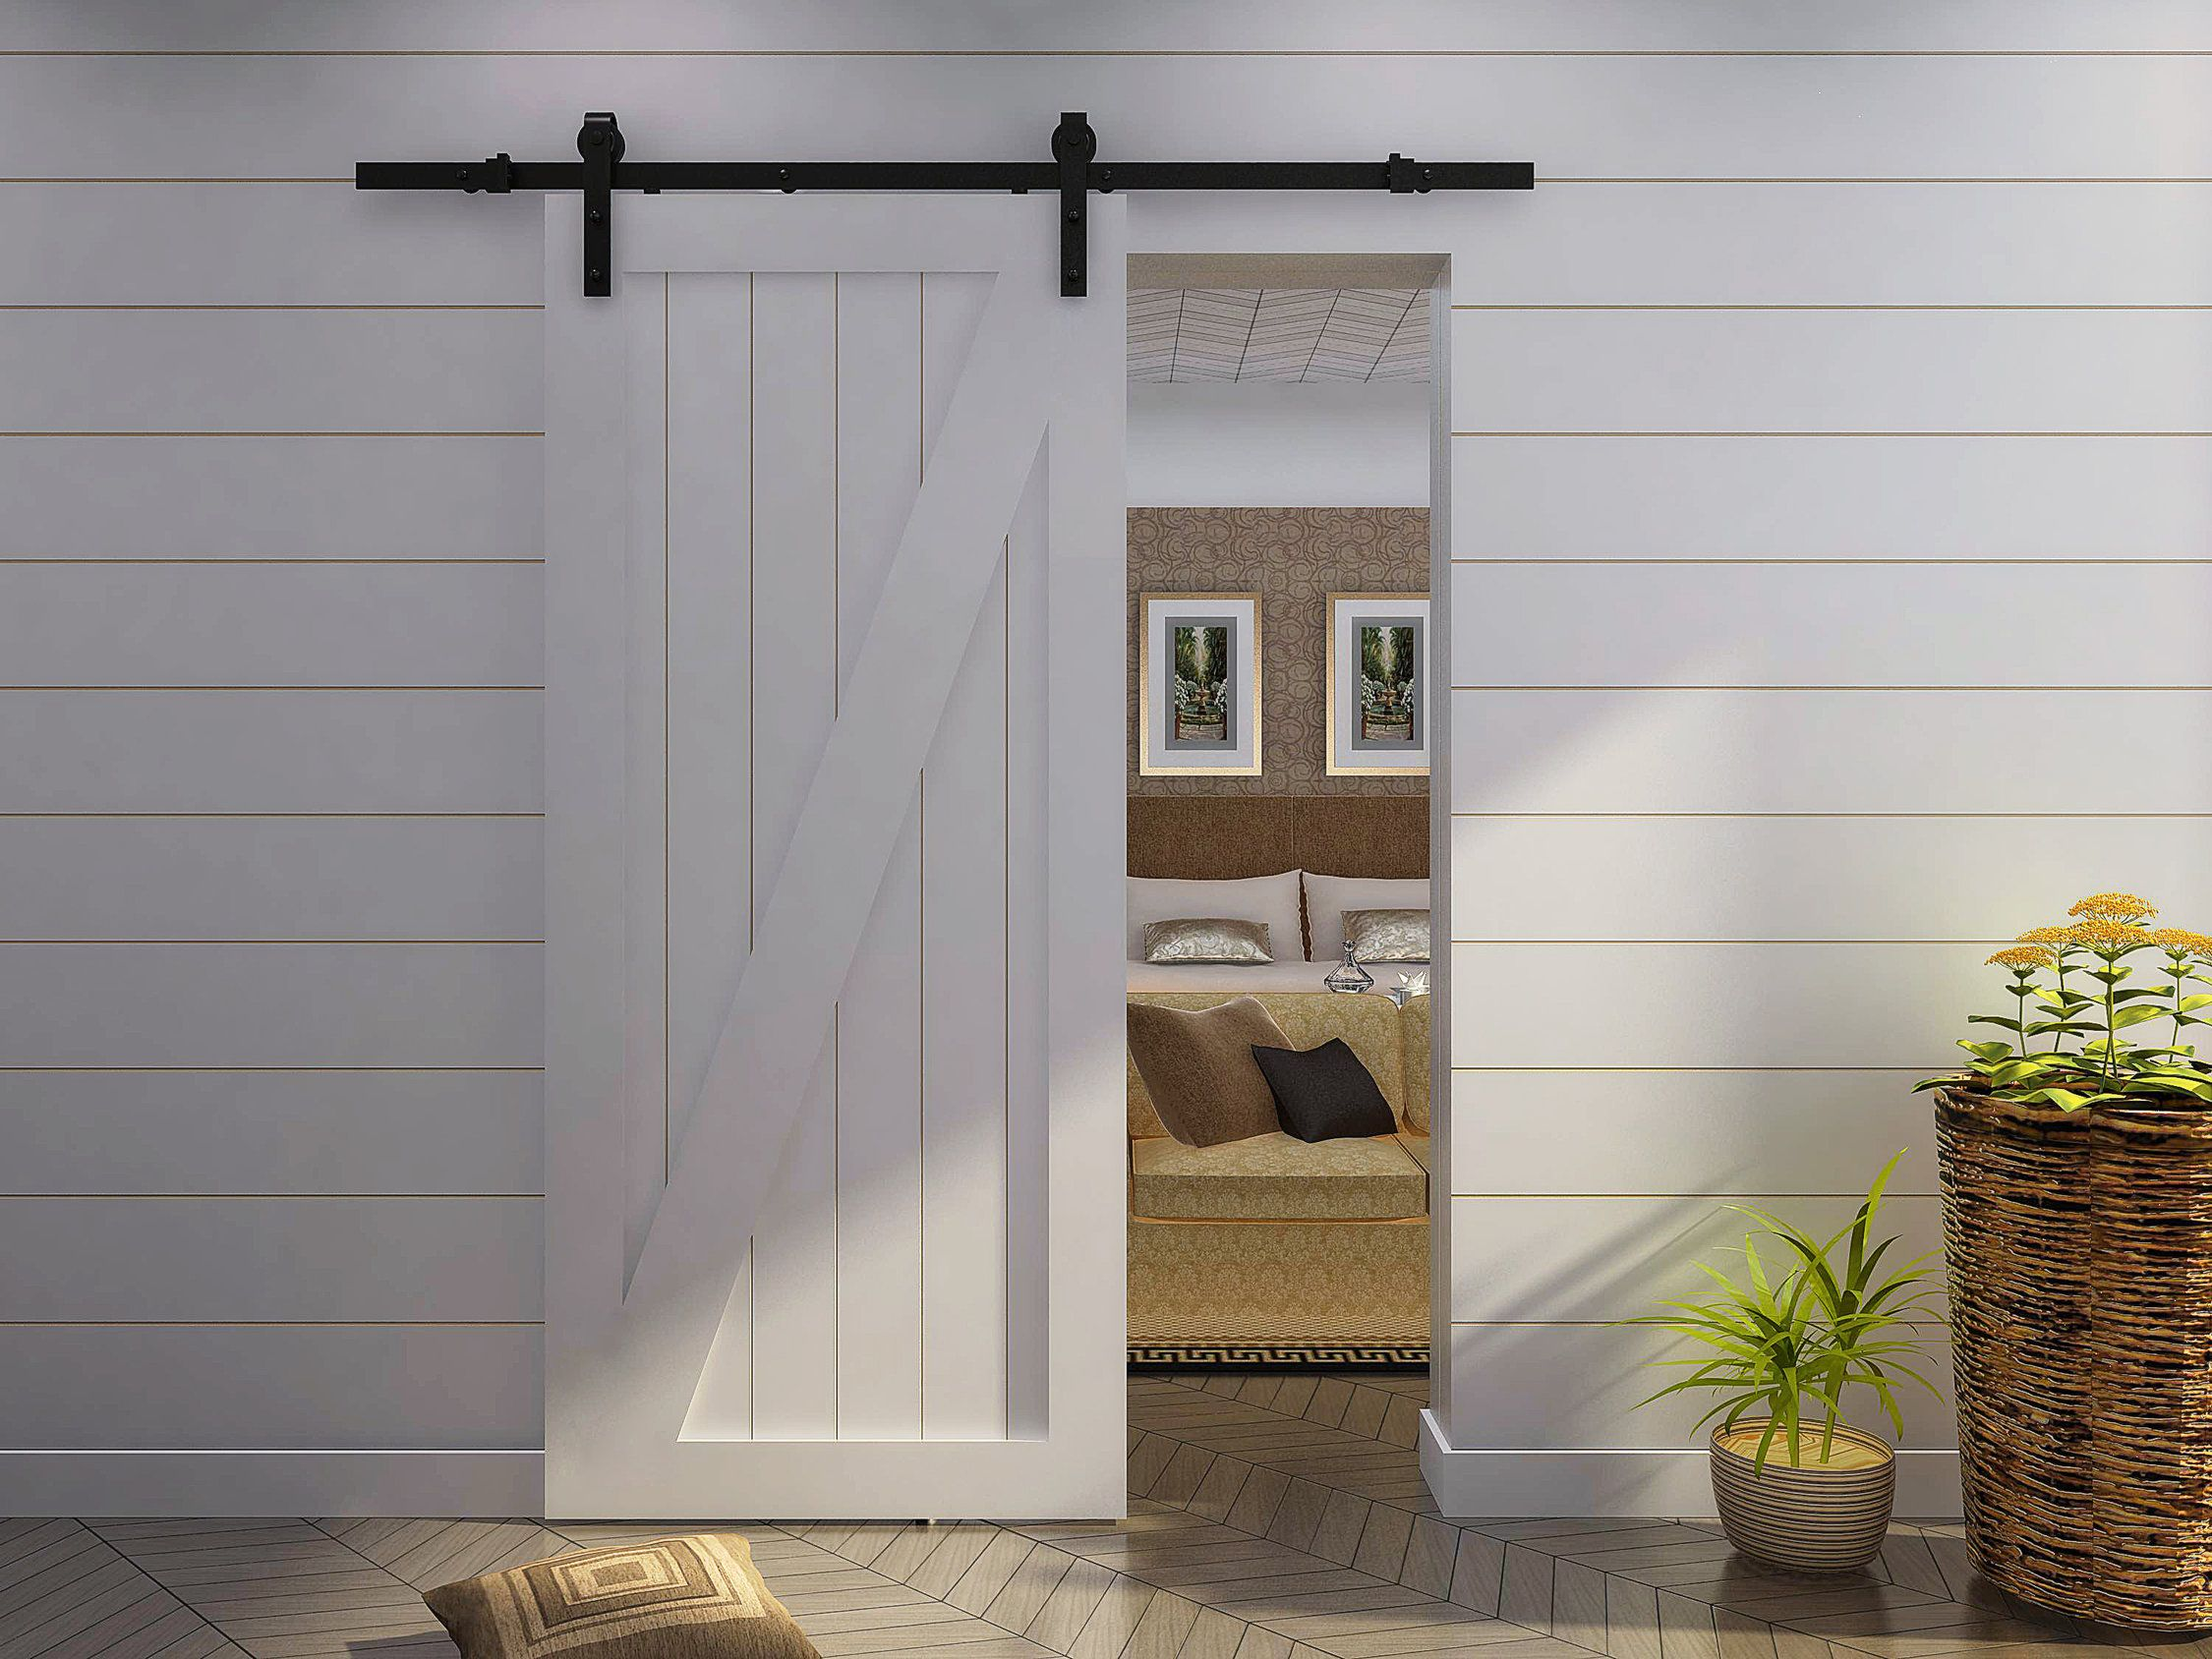 doors ohio types for barns interior sale cheap cleveland of door furniture modern sliding barn custom in